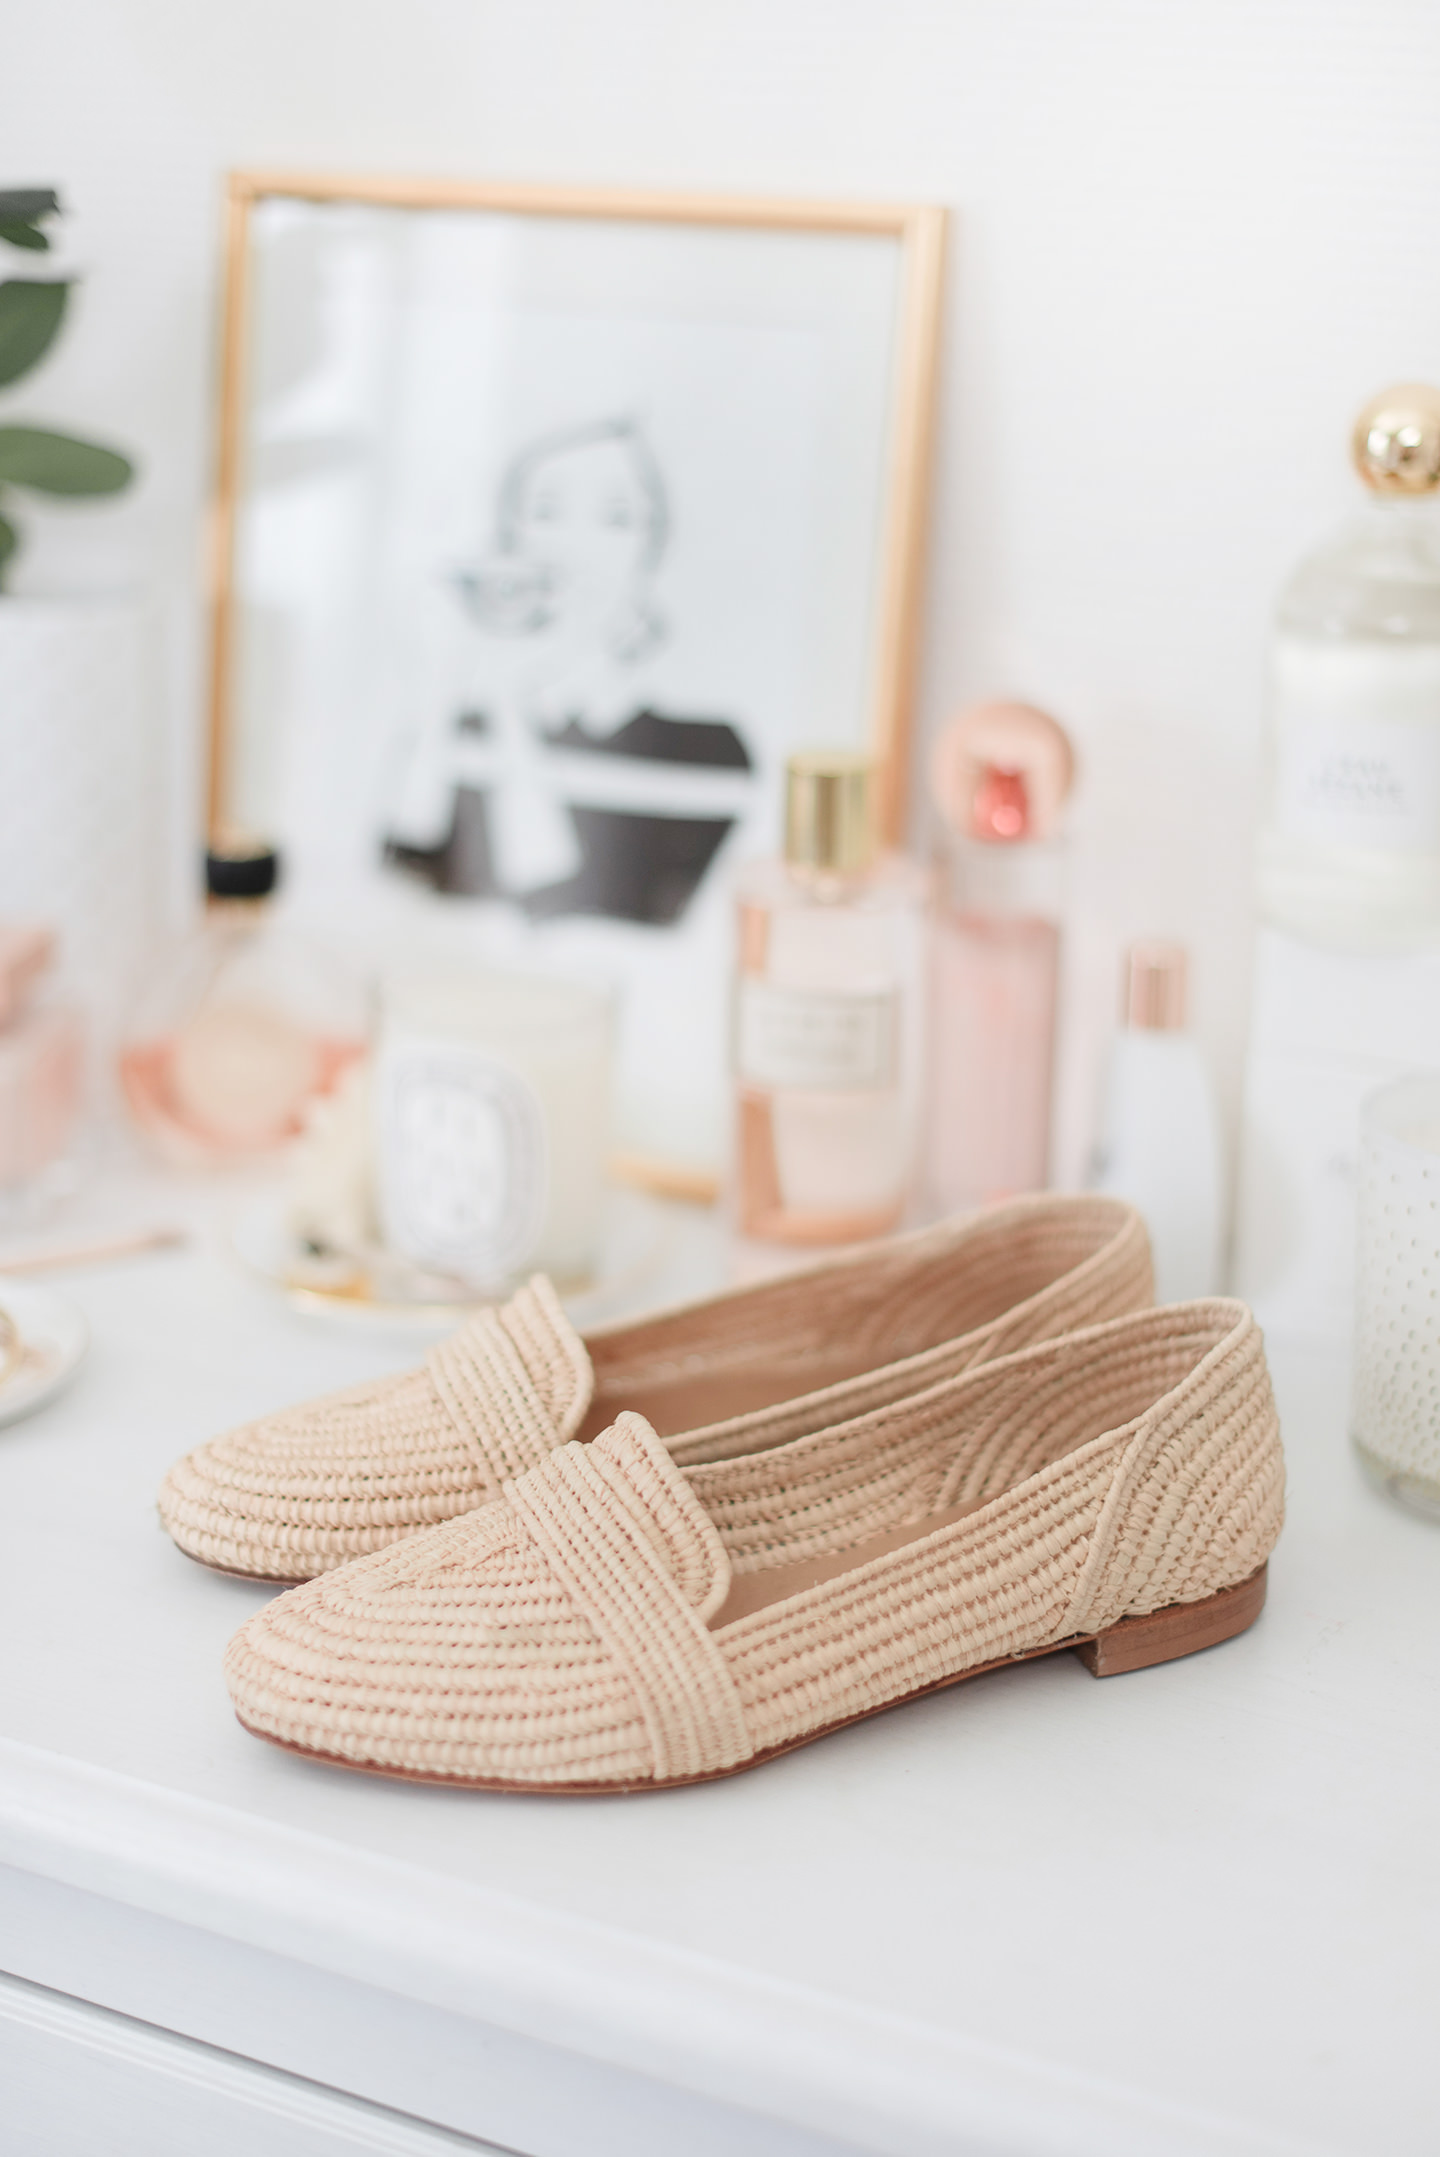 Blog-Mode-And-The-City-Lifestyle-Cinq-Petites-Choses-217-chaussures-raphia-sezane